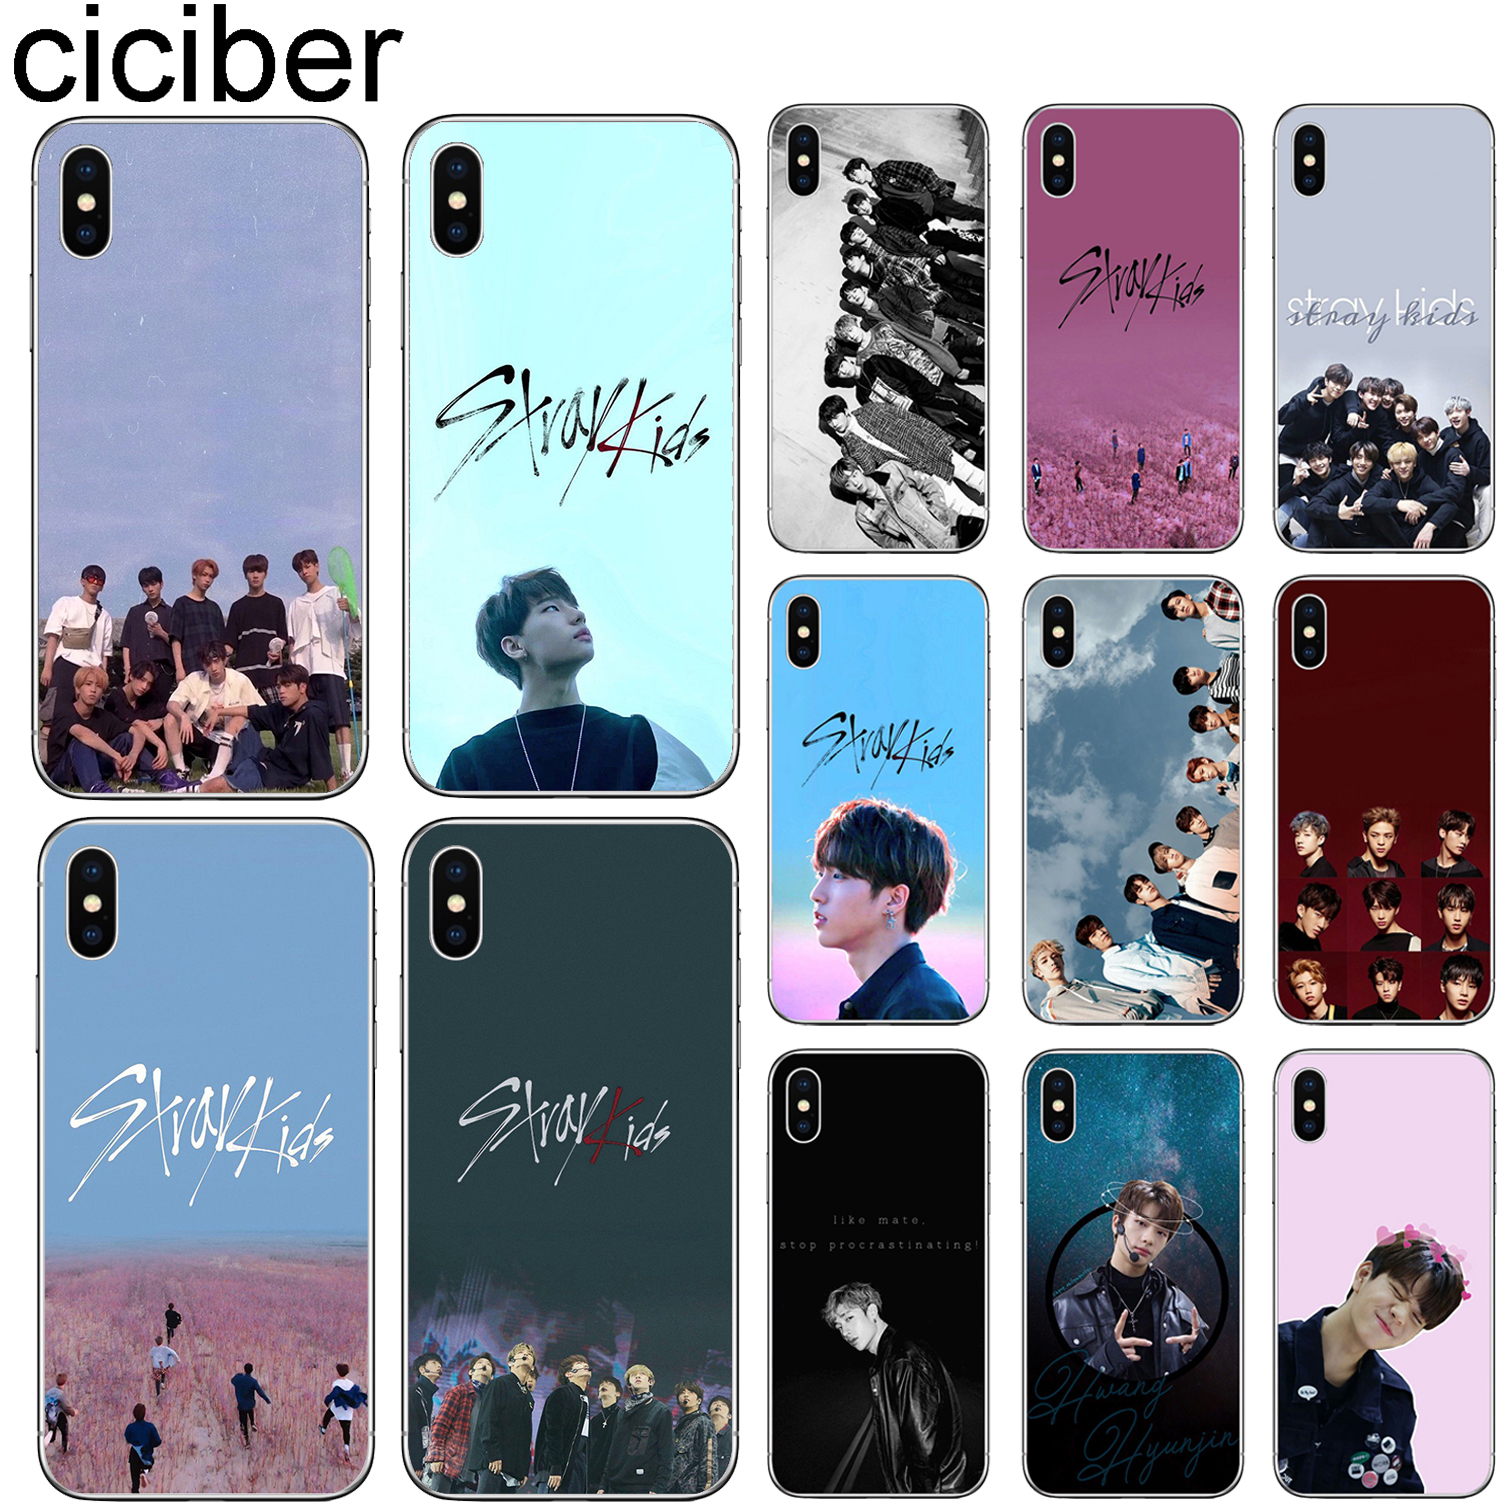 ciciber Stray Kids Cover for Iphone 7 8 6 6S Plus 5S SE 11 Pro Max Soft Silicone Phone Case for Iphone X XR XS MAX Coque Fundas